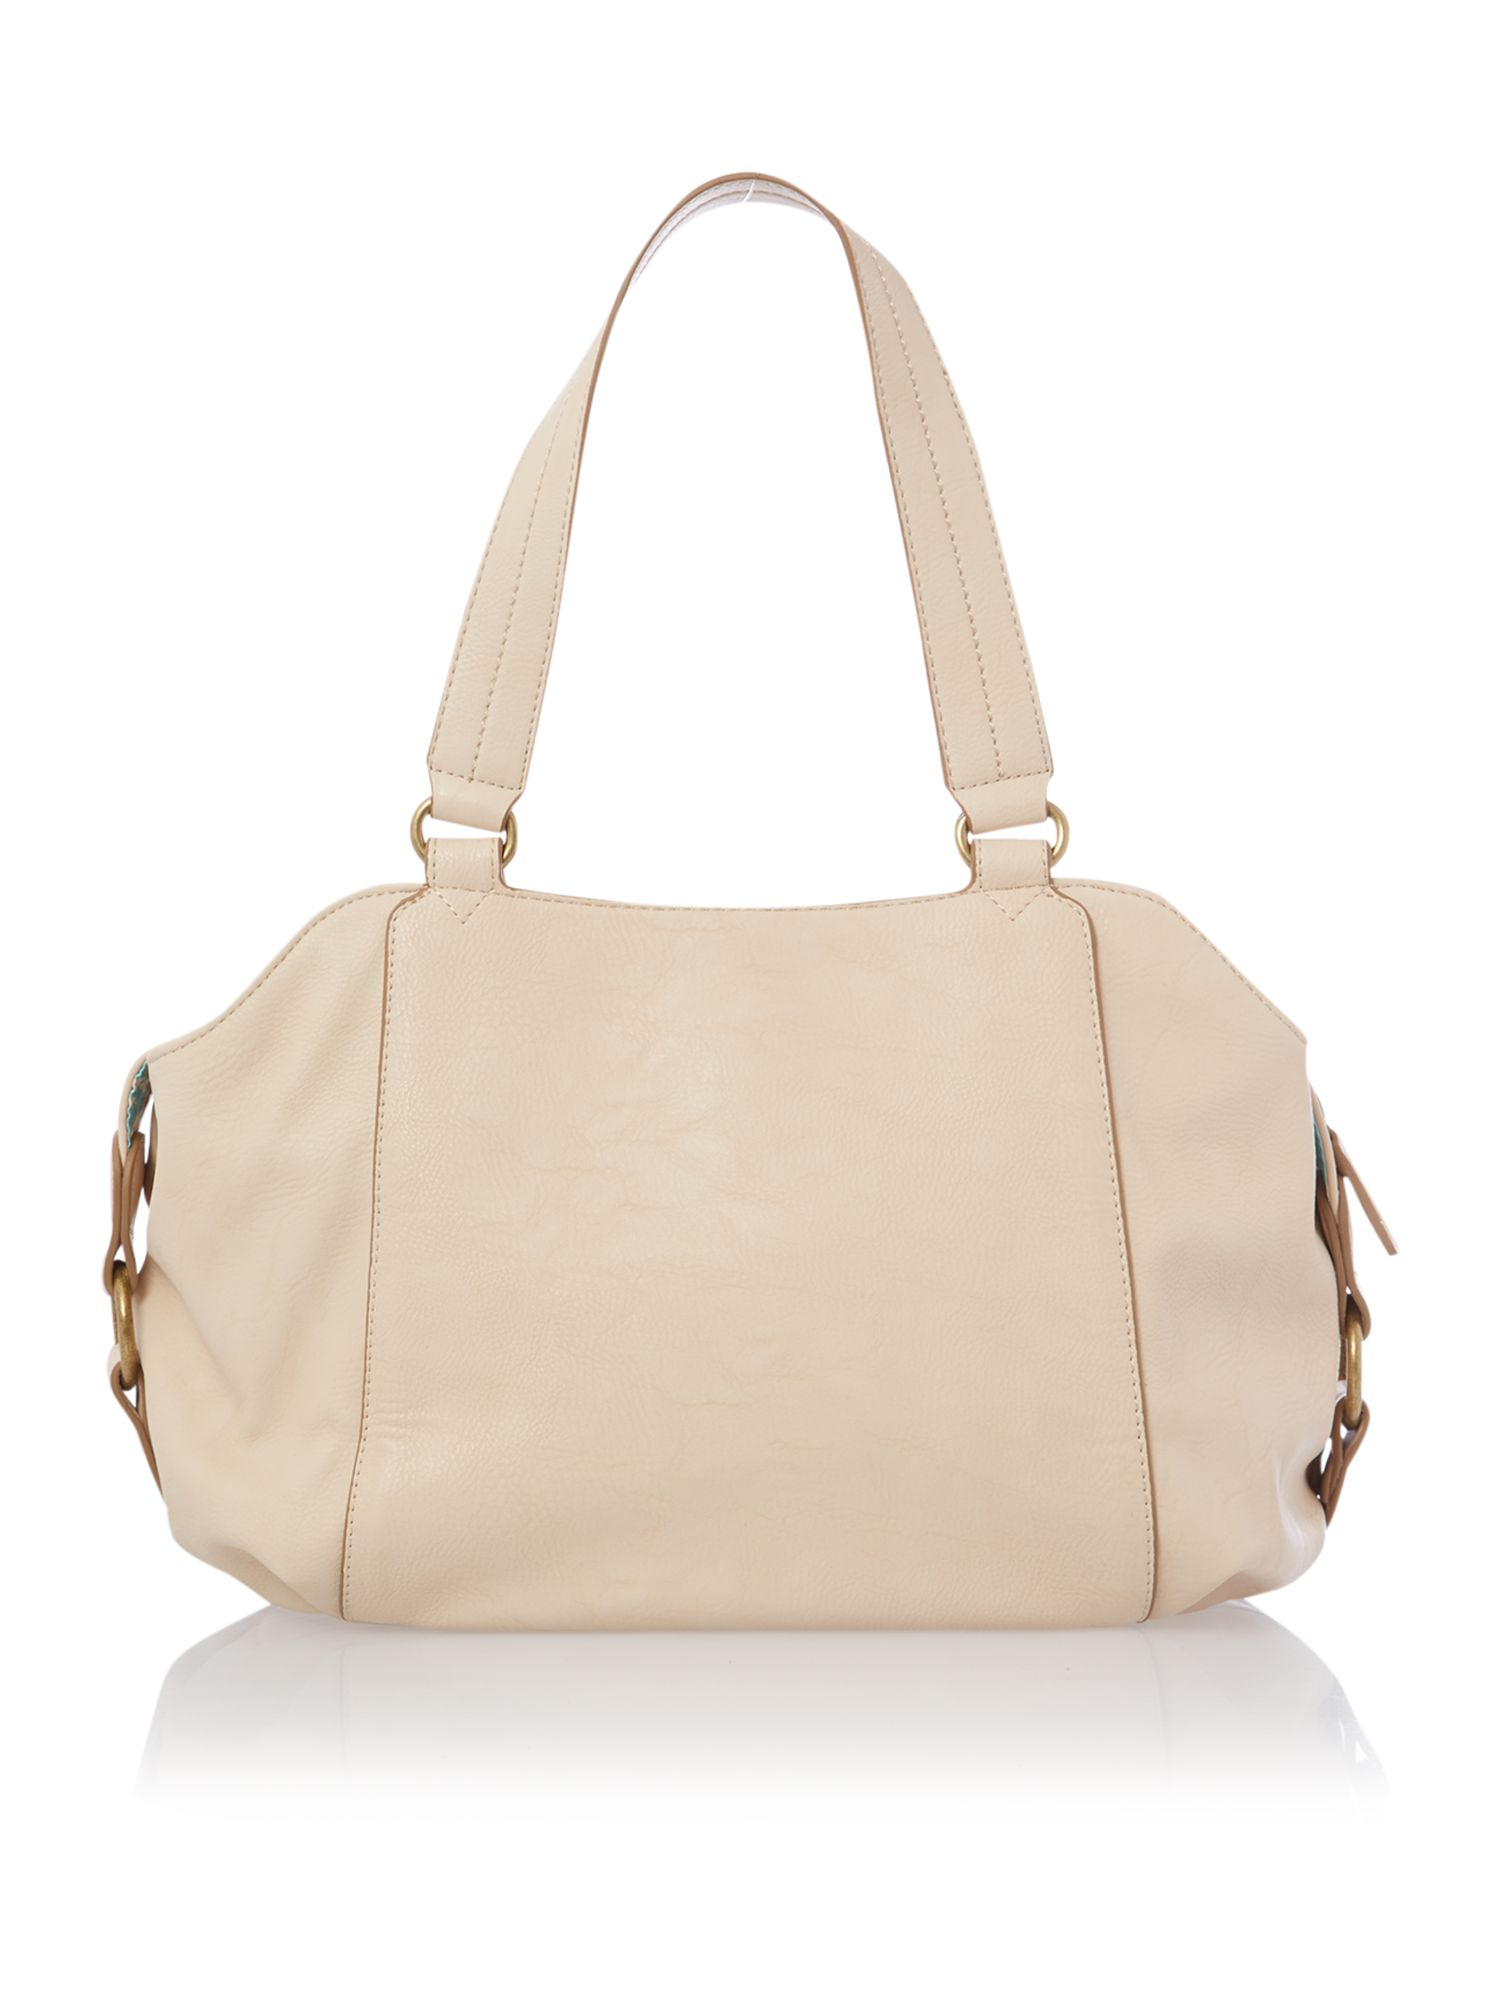 Judy neutral tote bag